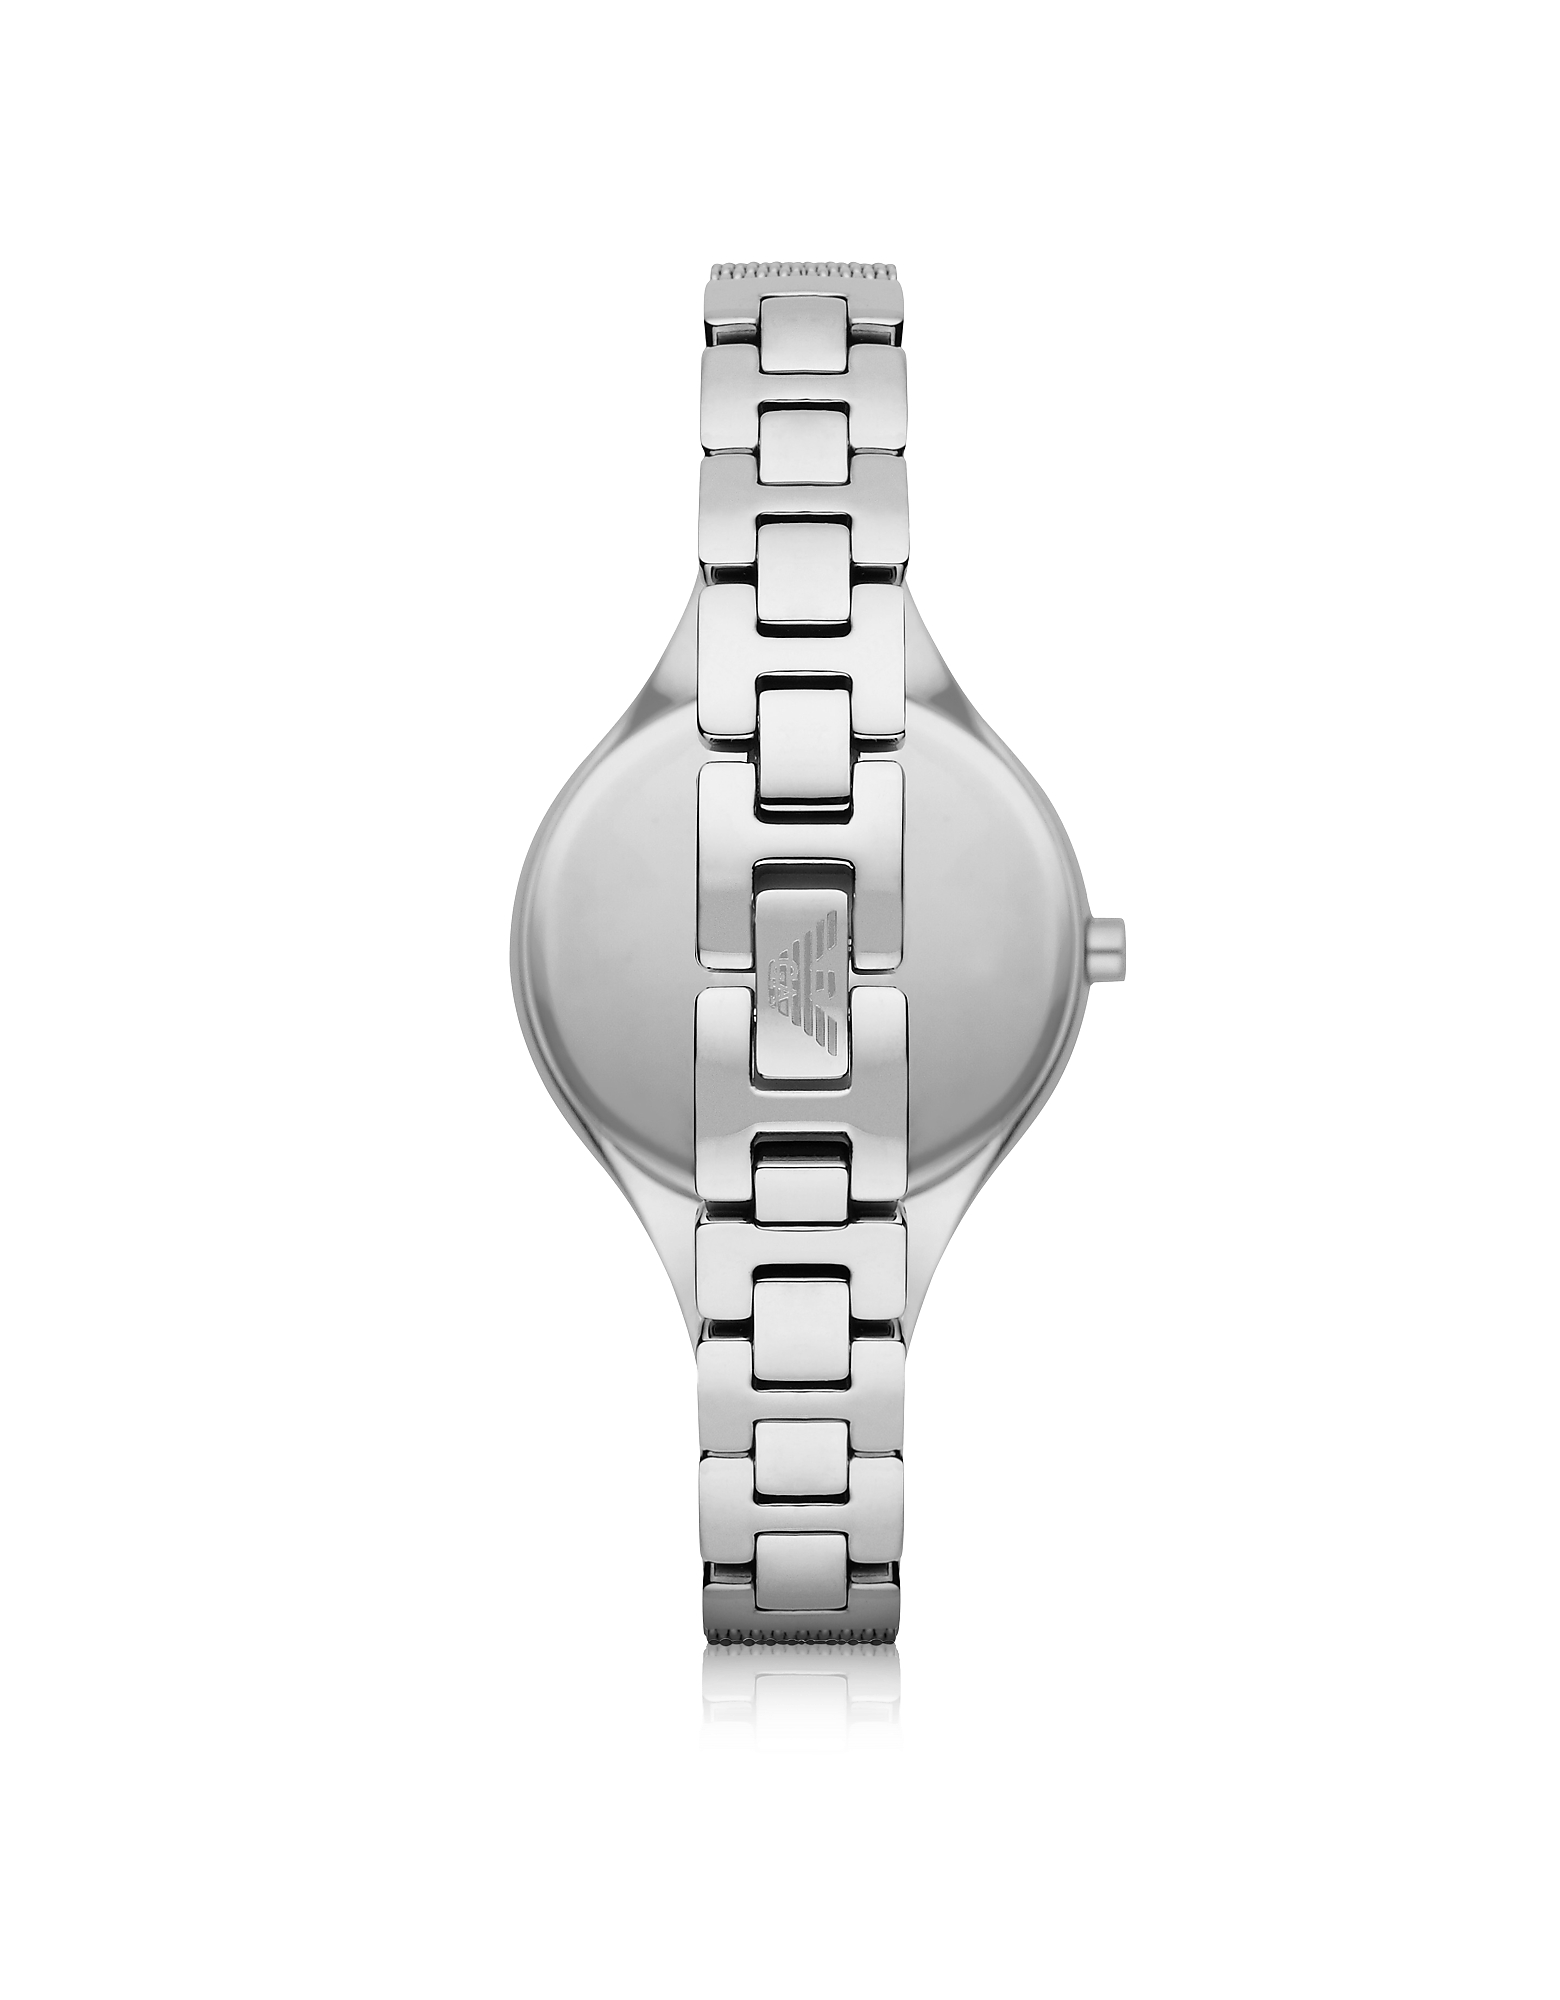 Stainless Steel Women's Watch w/Mesh Strap от Forzieri.com INT